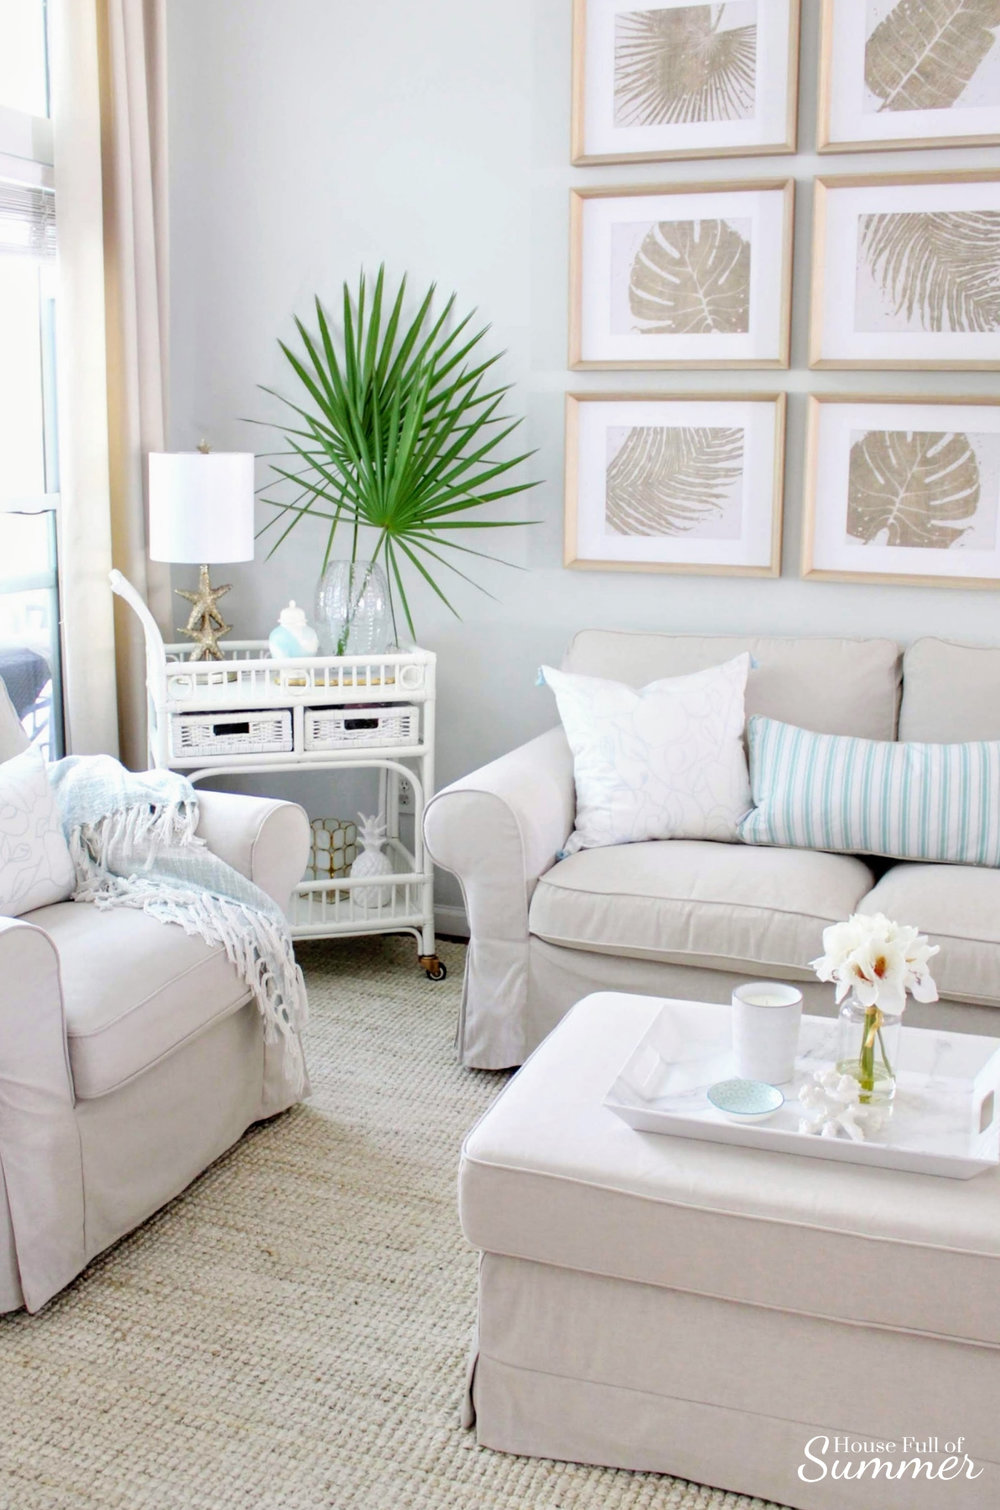 Adding Spring Color to the Living Room and Foyer | House Full of Summer - spring decor, coastal decor, neutral interior, turquoise accents, console table, round mirror, fiddle leaf fig, decorating with palm fronds, entryway, lighting, Florida home decor ideas, slip covered furniture, jute rug, beach house style, cane bar cart, DIY spray paint, budget decor, rattan bar cart, bamboo cart, accent table, spring home tour, chinoiserie chic, gallery wall, floor lamp